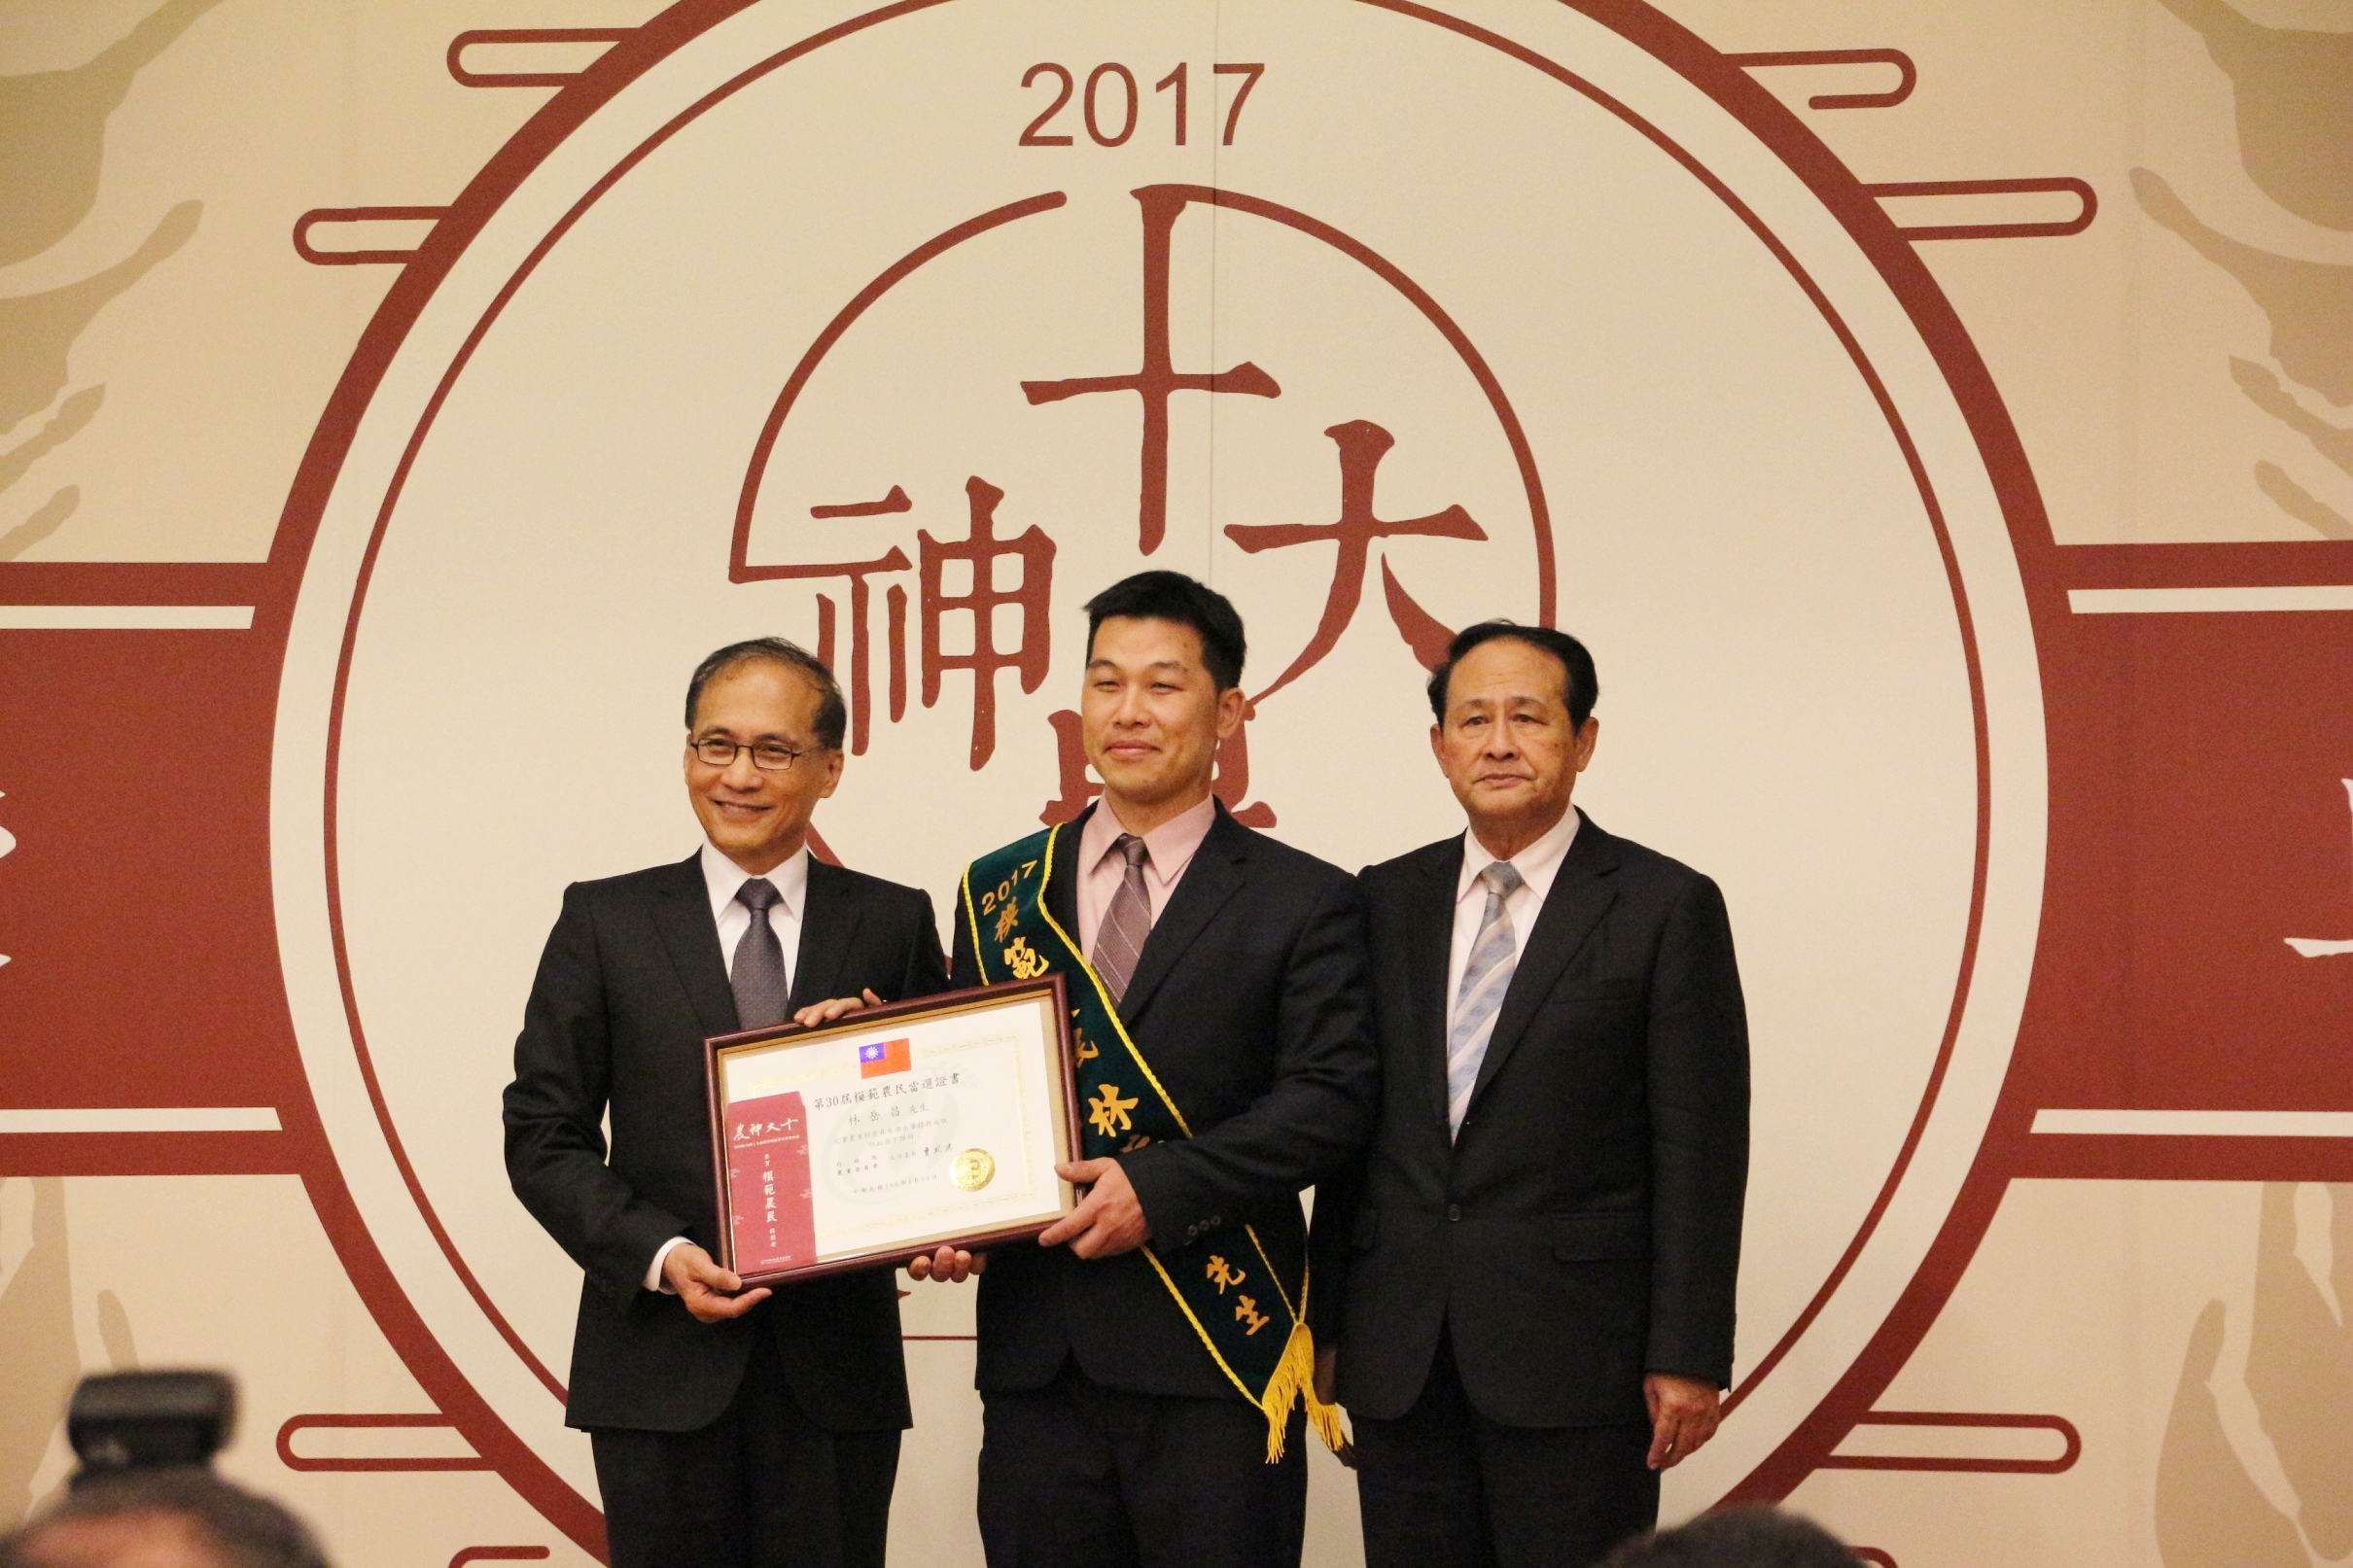 The photo shows hog producer Lin Yueh-chan (center) receiving award from Premier Lin Chuan (left) and agricultural minister Tsao Chi-hung (right). (Taiwan News Photo by Sophia Yang)